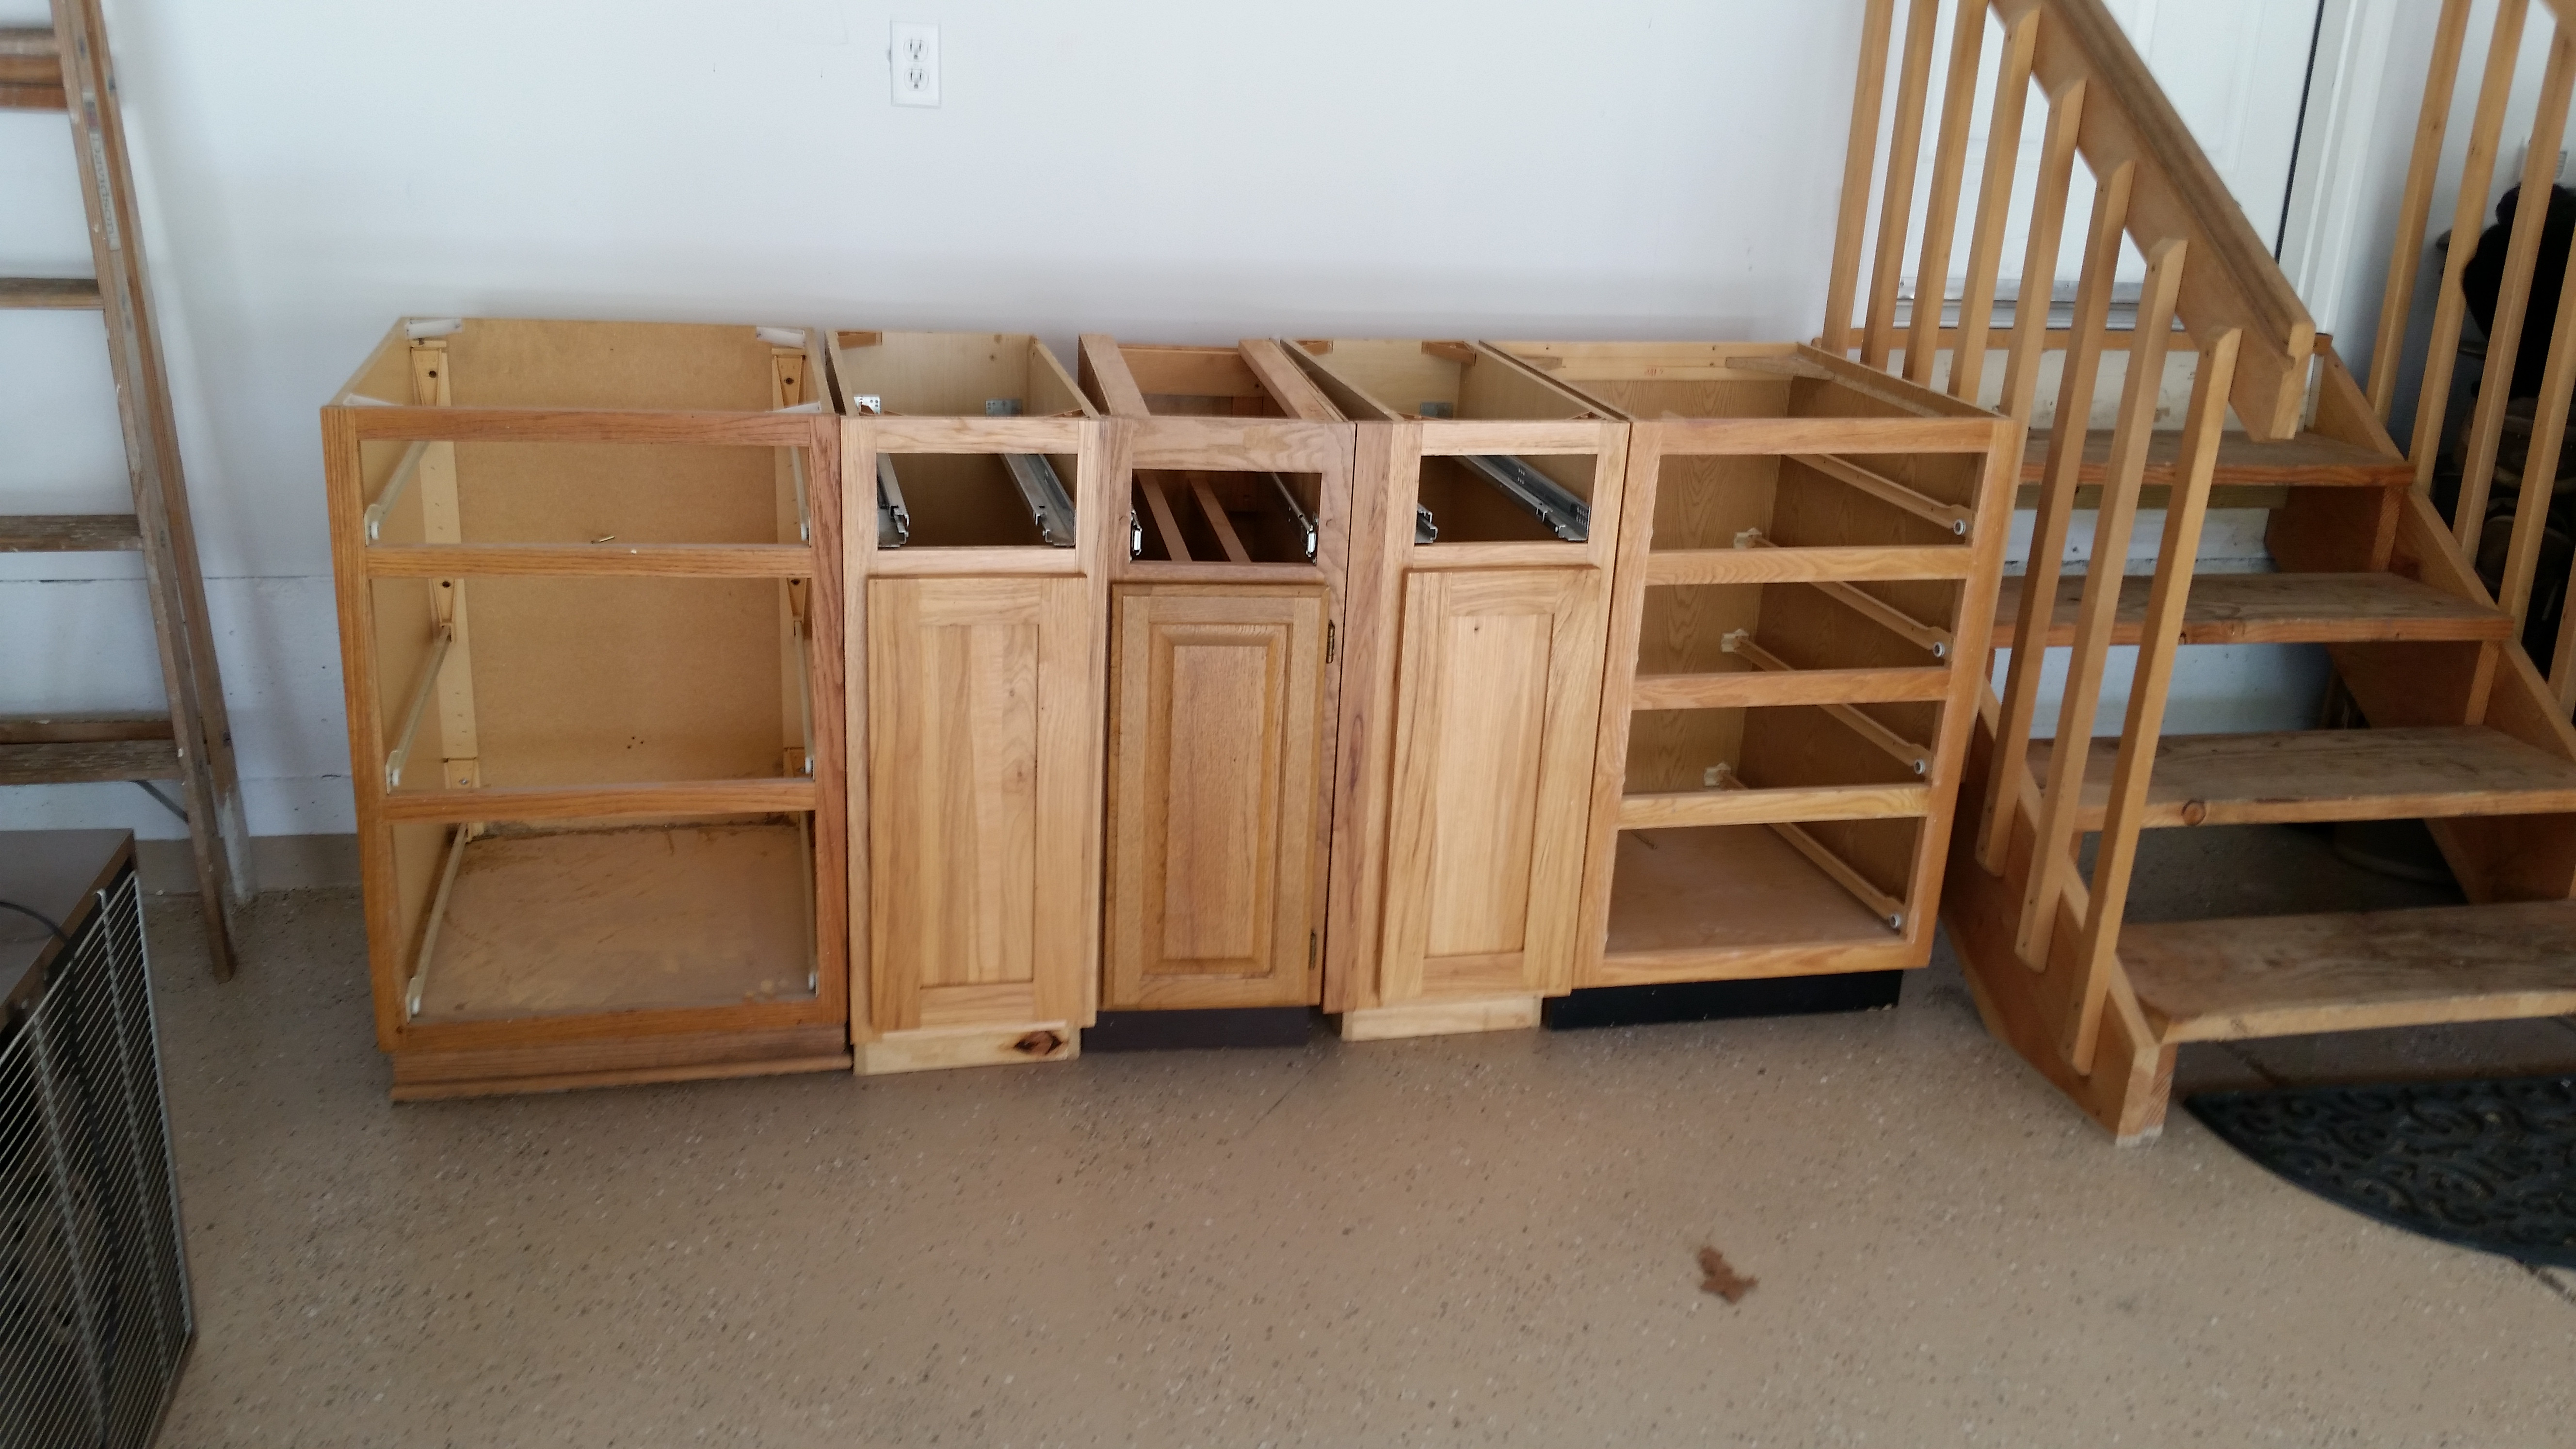 Best ideas about DIY Shop Cabinets . Save or Pin Remodelaholic Build An Organized Pegboard Tool Cabinet And Now.